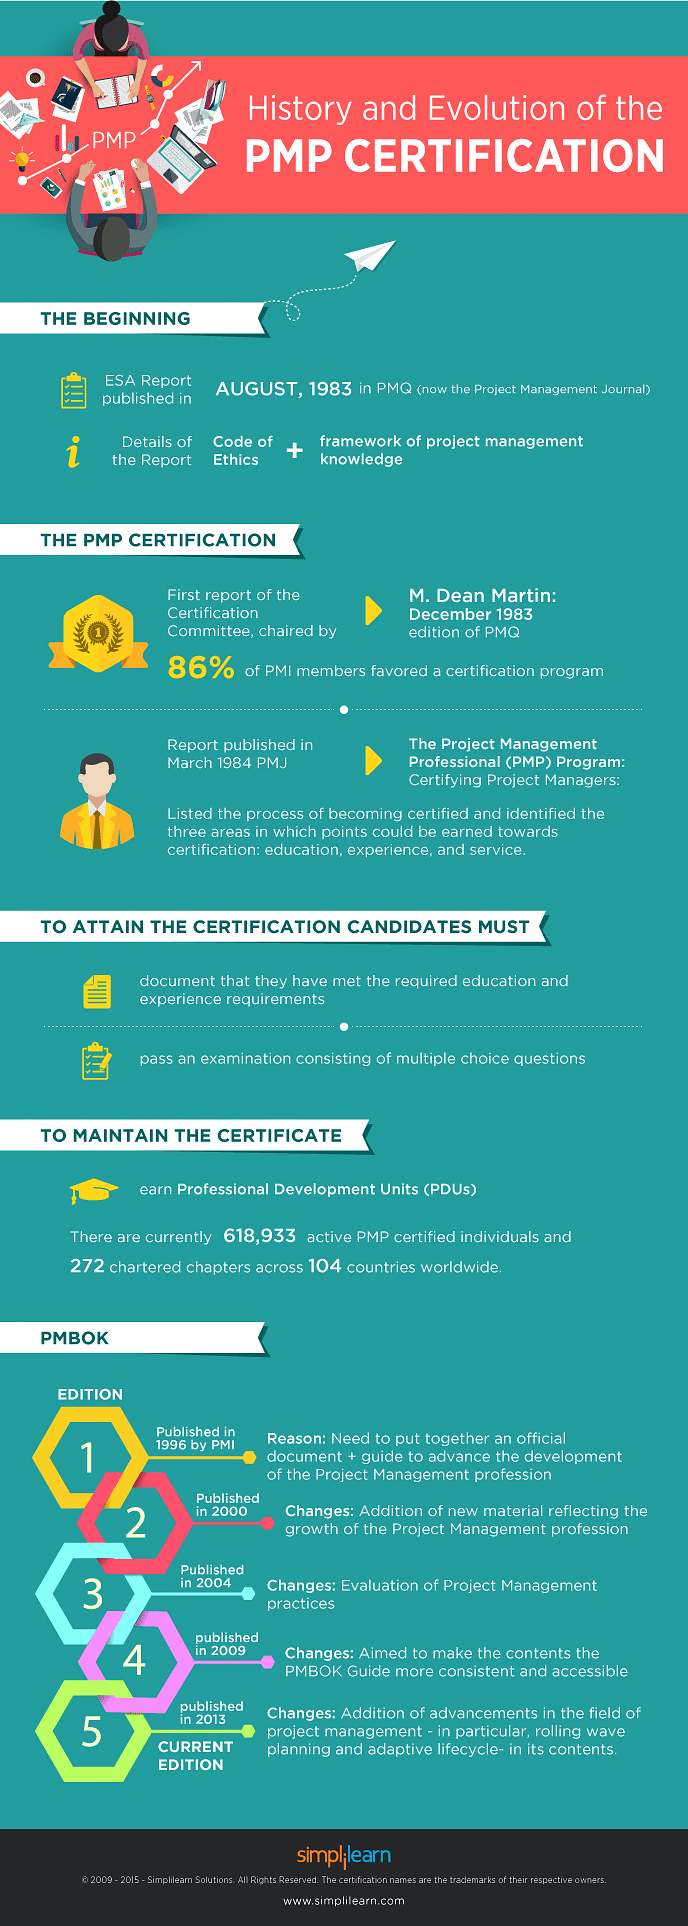 History and evolution of the PMP® Certification